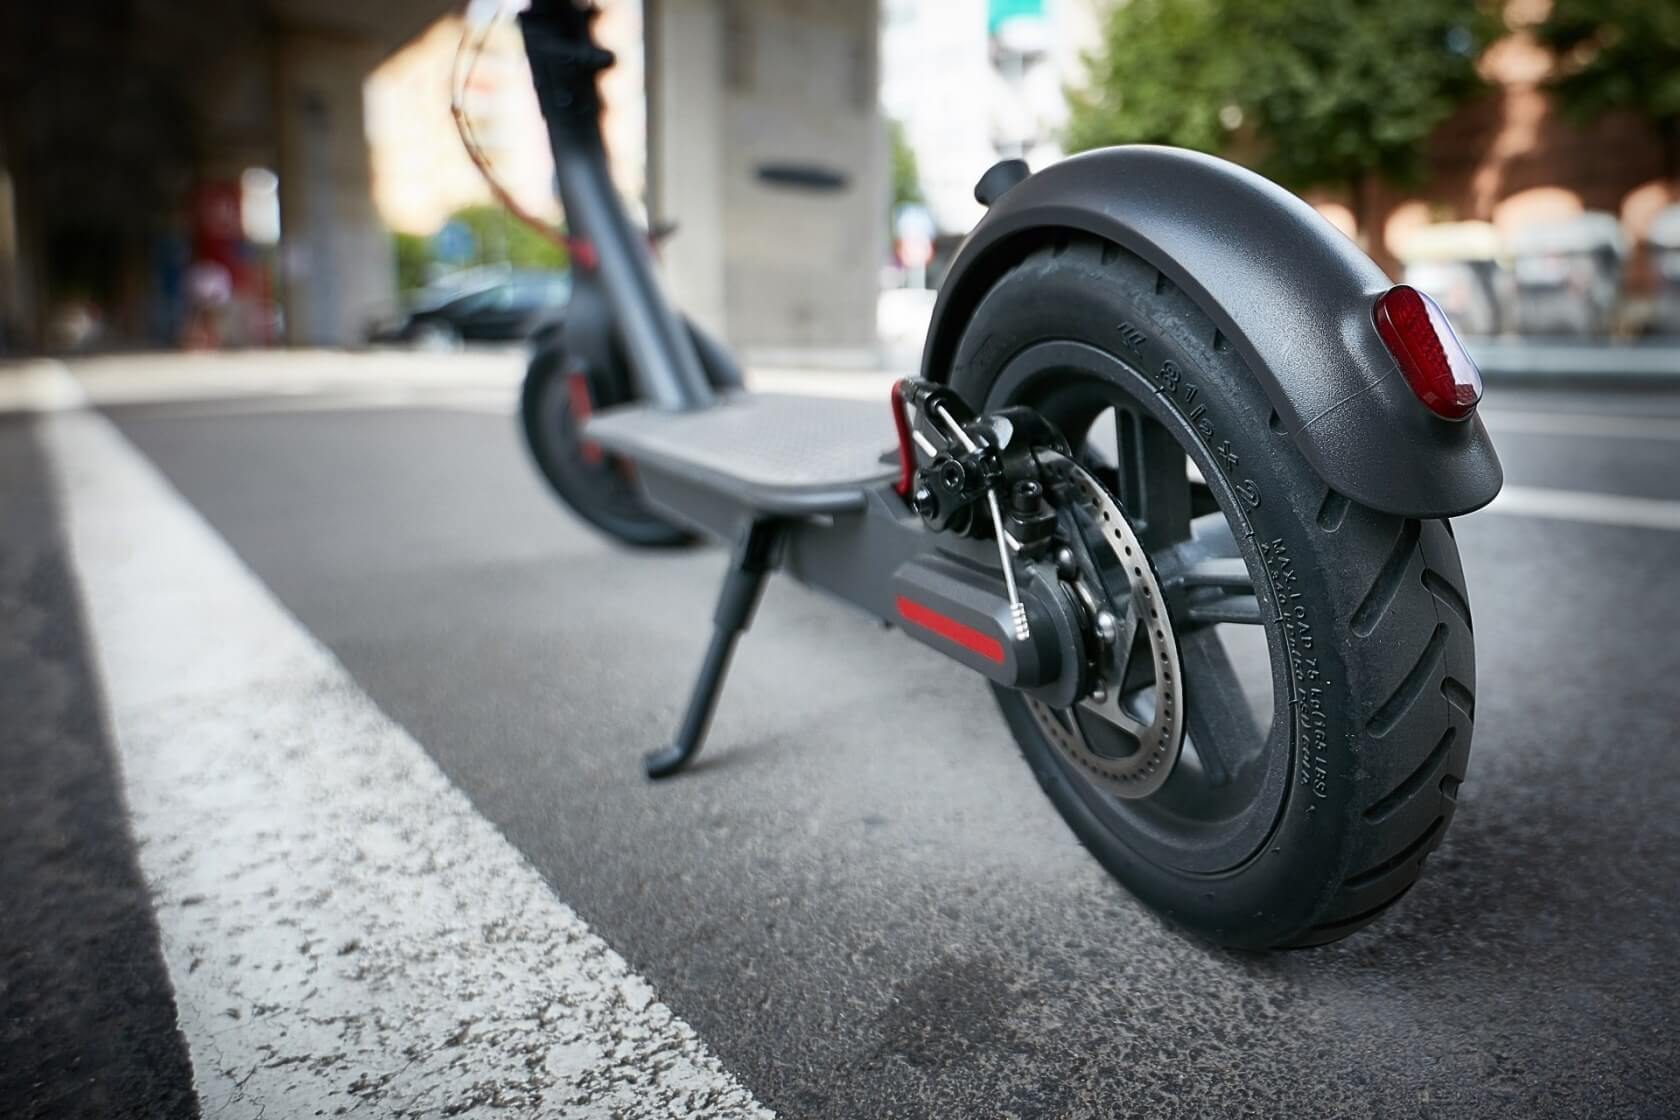 Segway-Ninebot announces an e-scooter that can drive itself back to a charging station